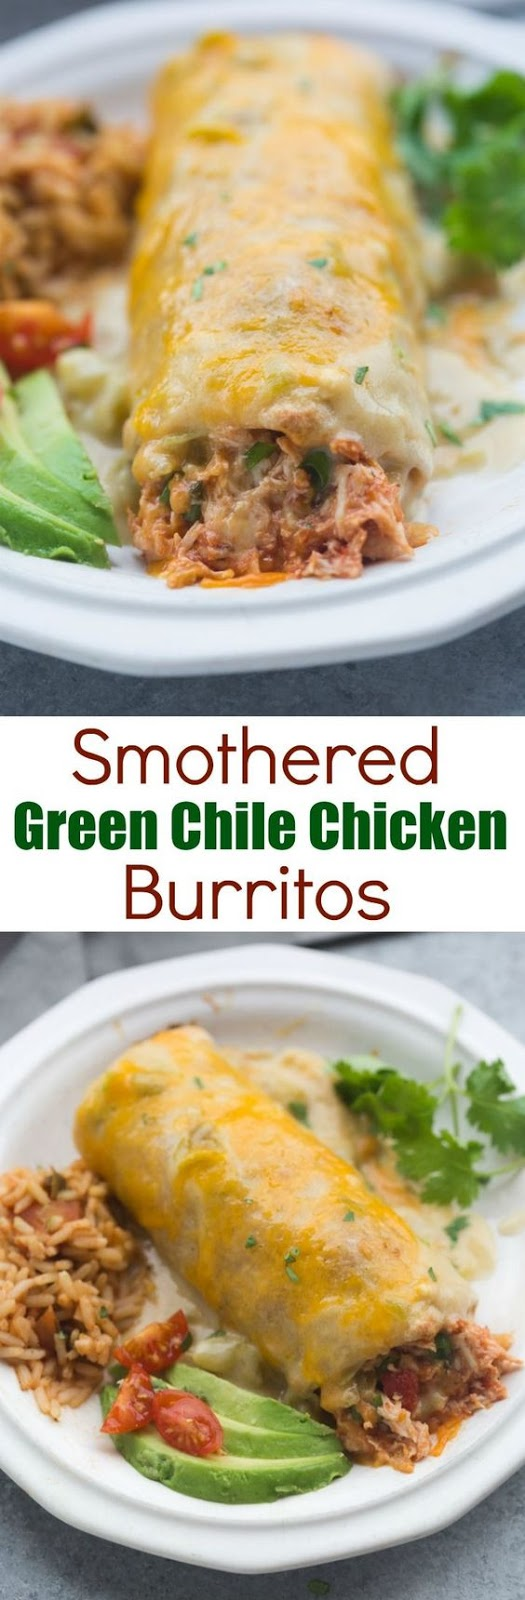 SMOTHERED GREEN CHILE CHICKEN BURRITOS